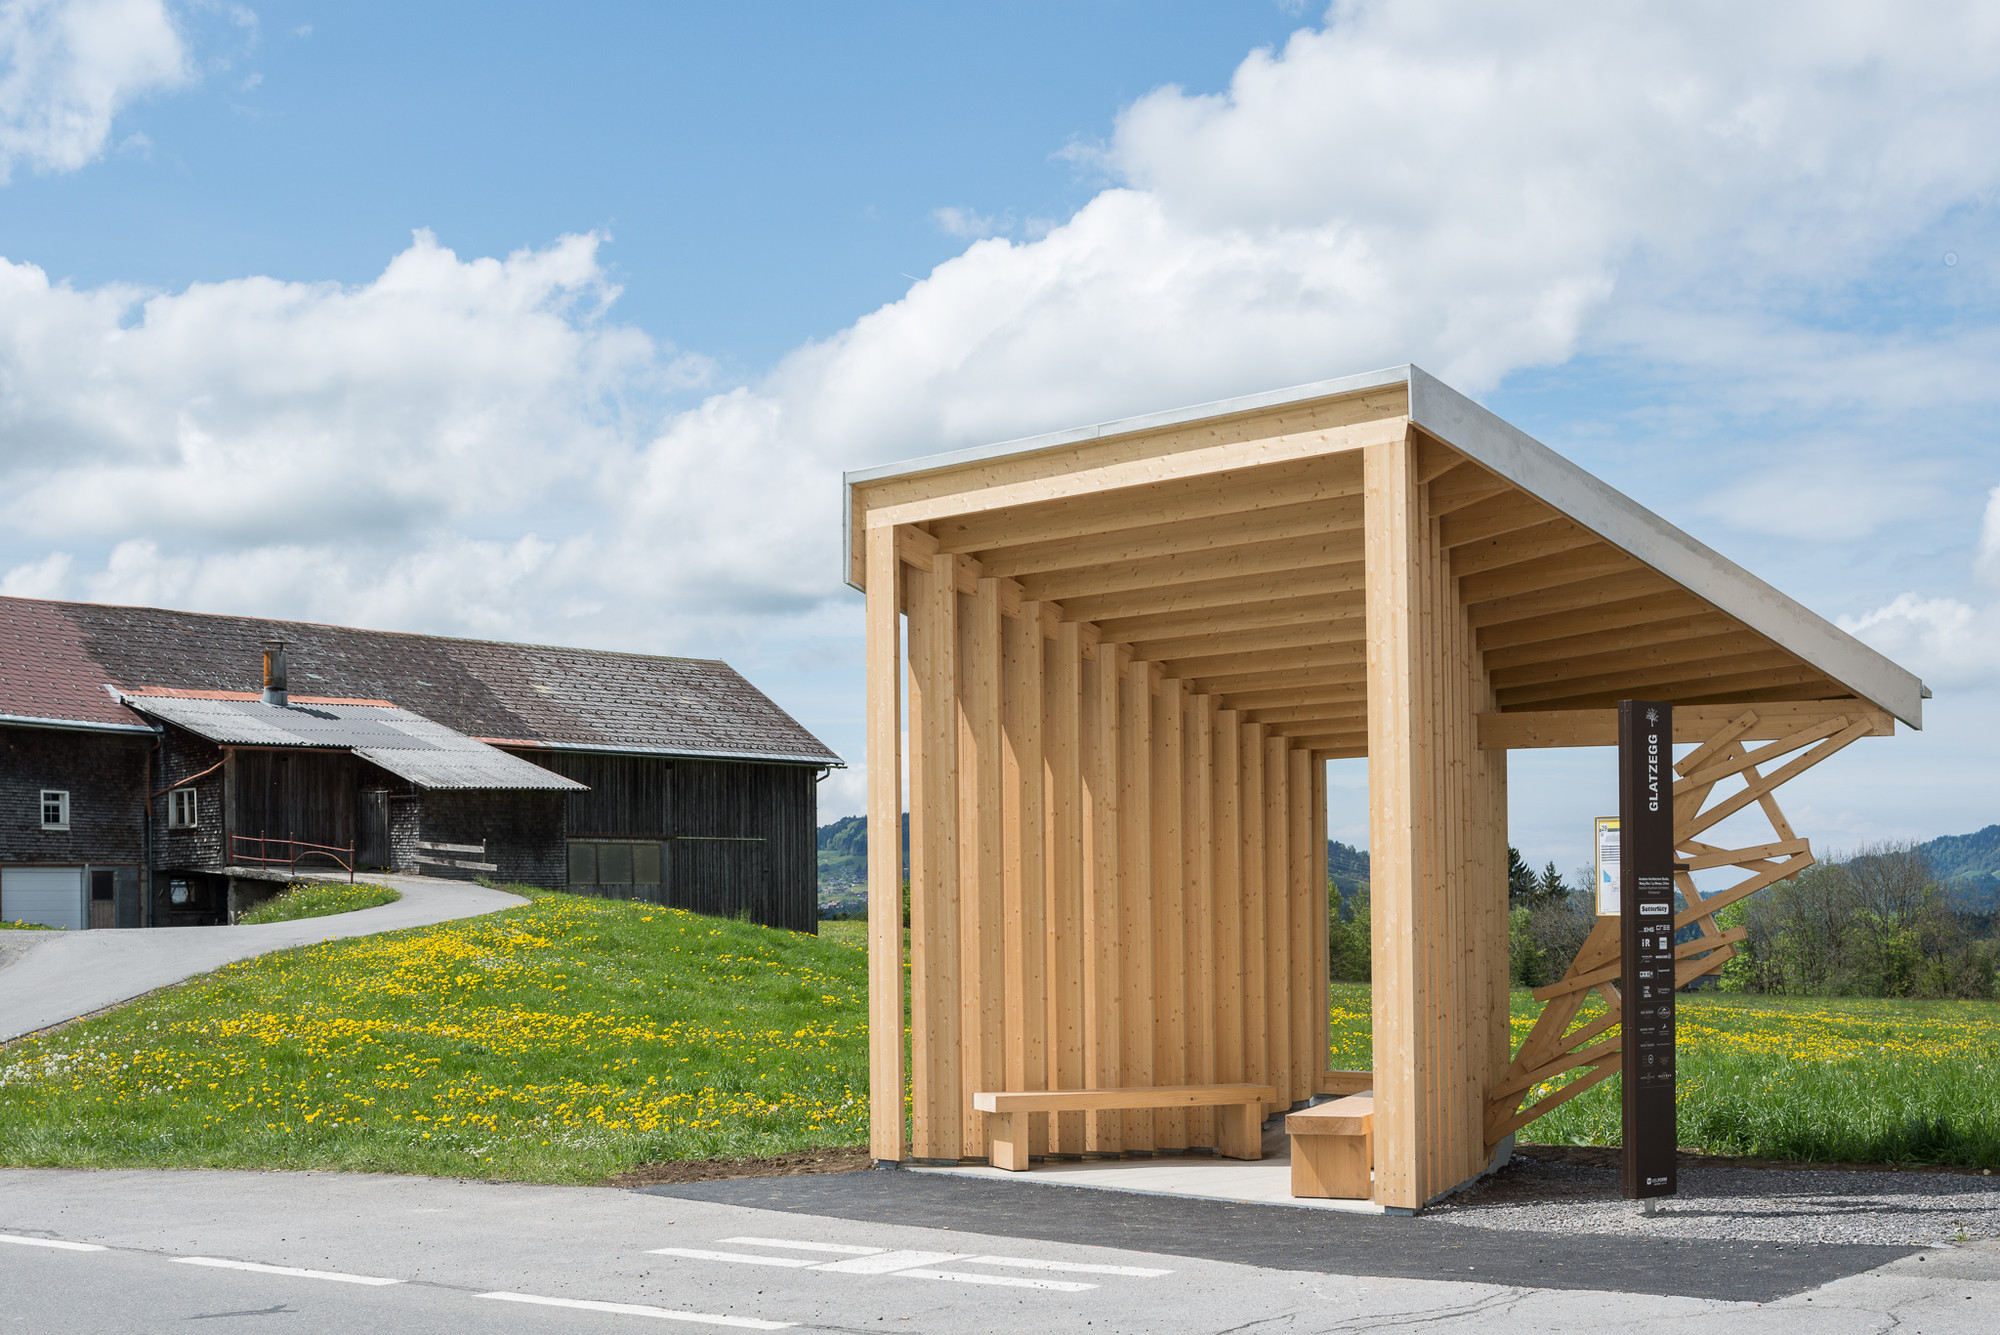 Bus stop unveils 7 unusual bus shelters by world class for Shelter studios